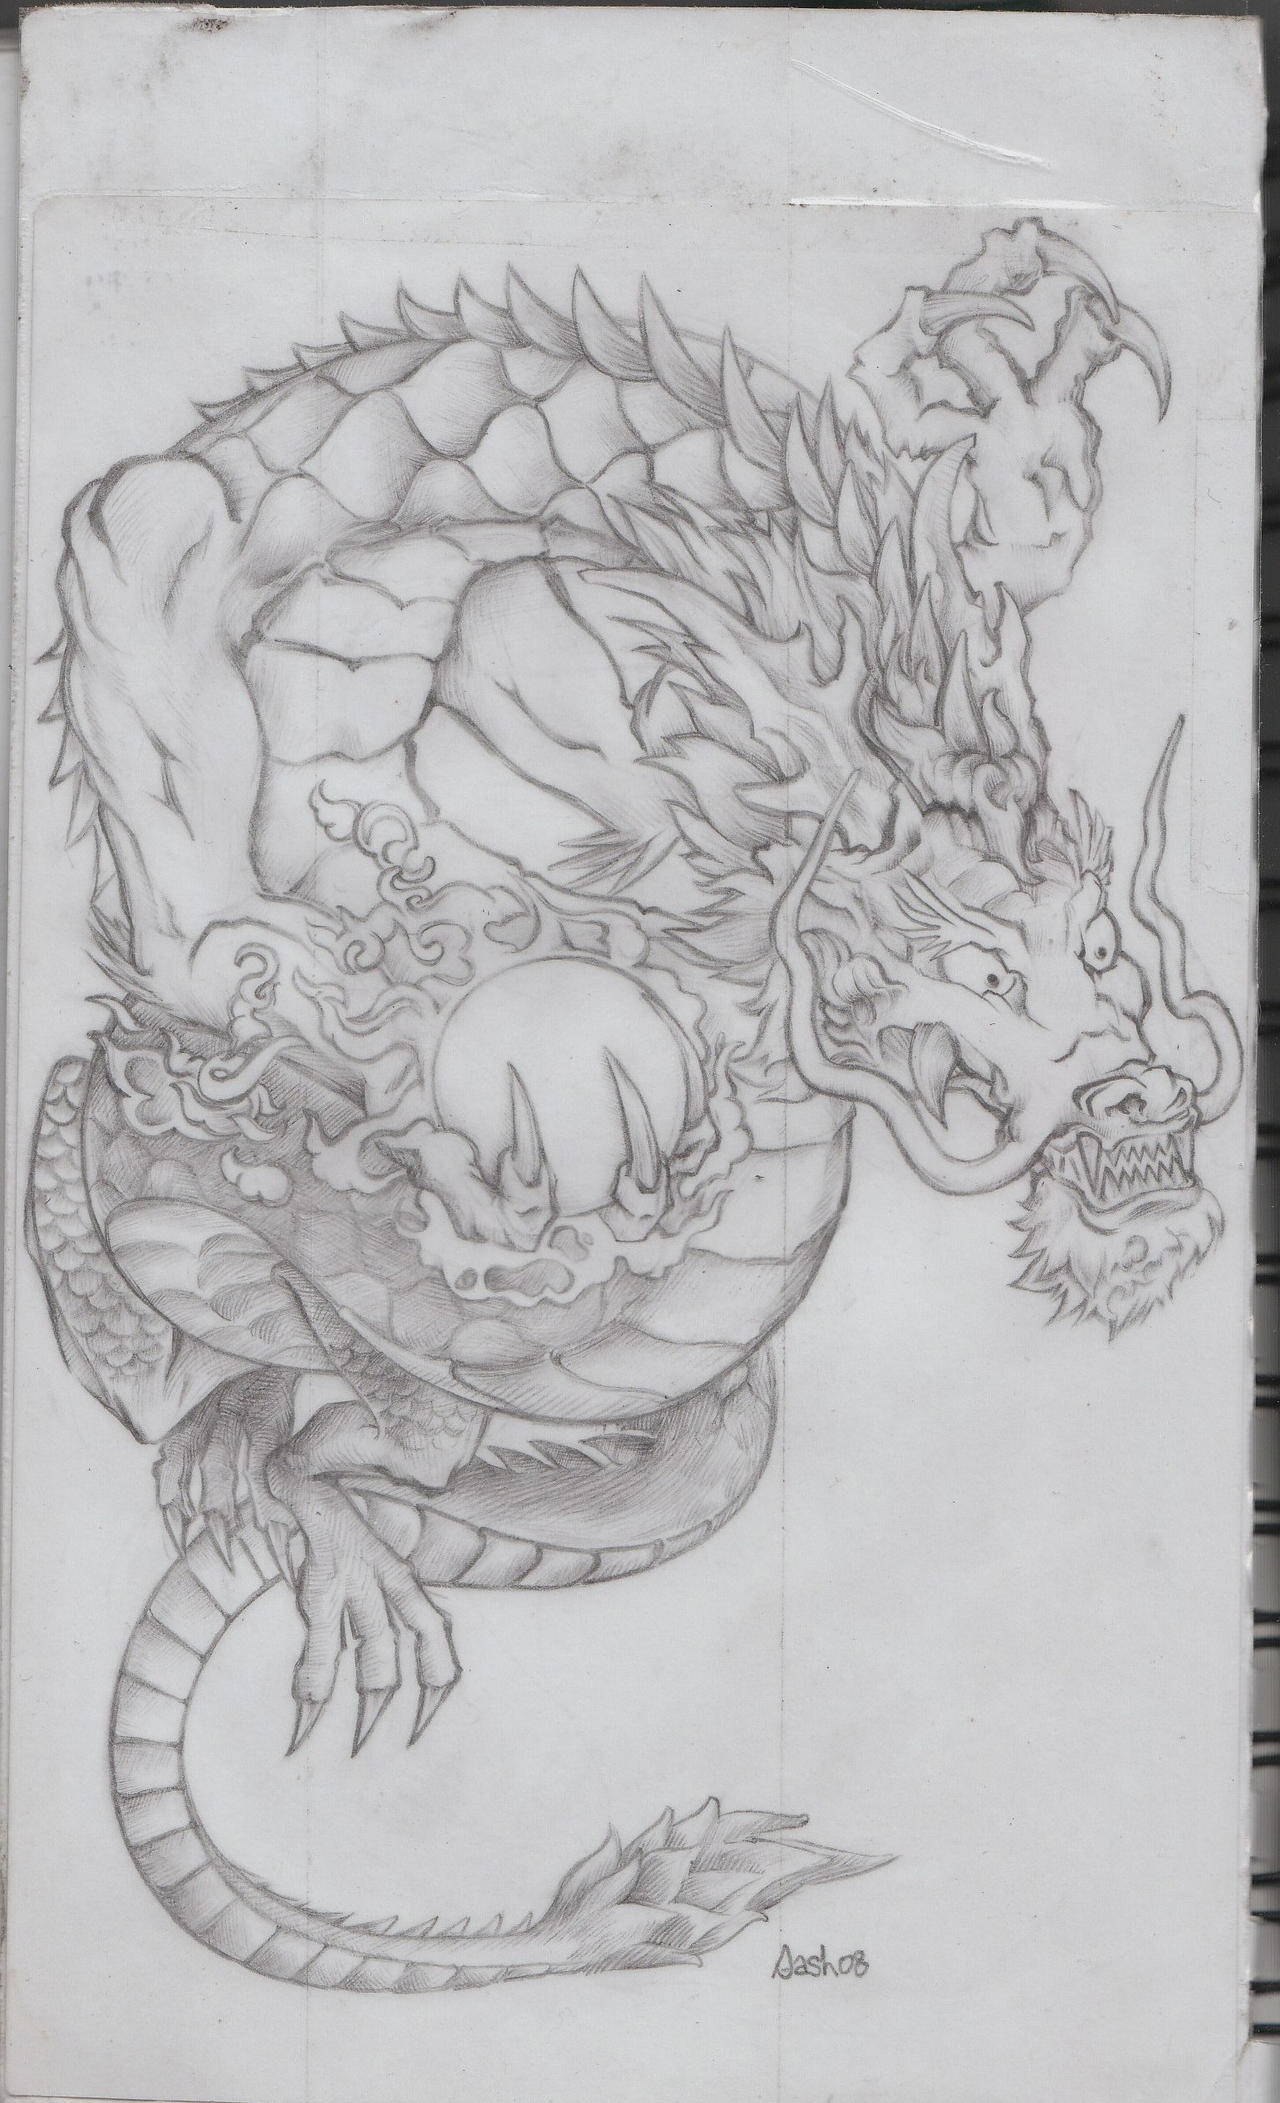 tiger-dragon tattoo, step 2. by Cericle